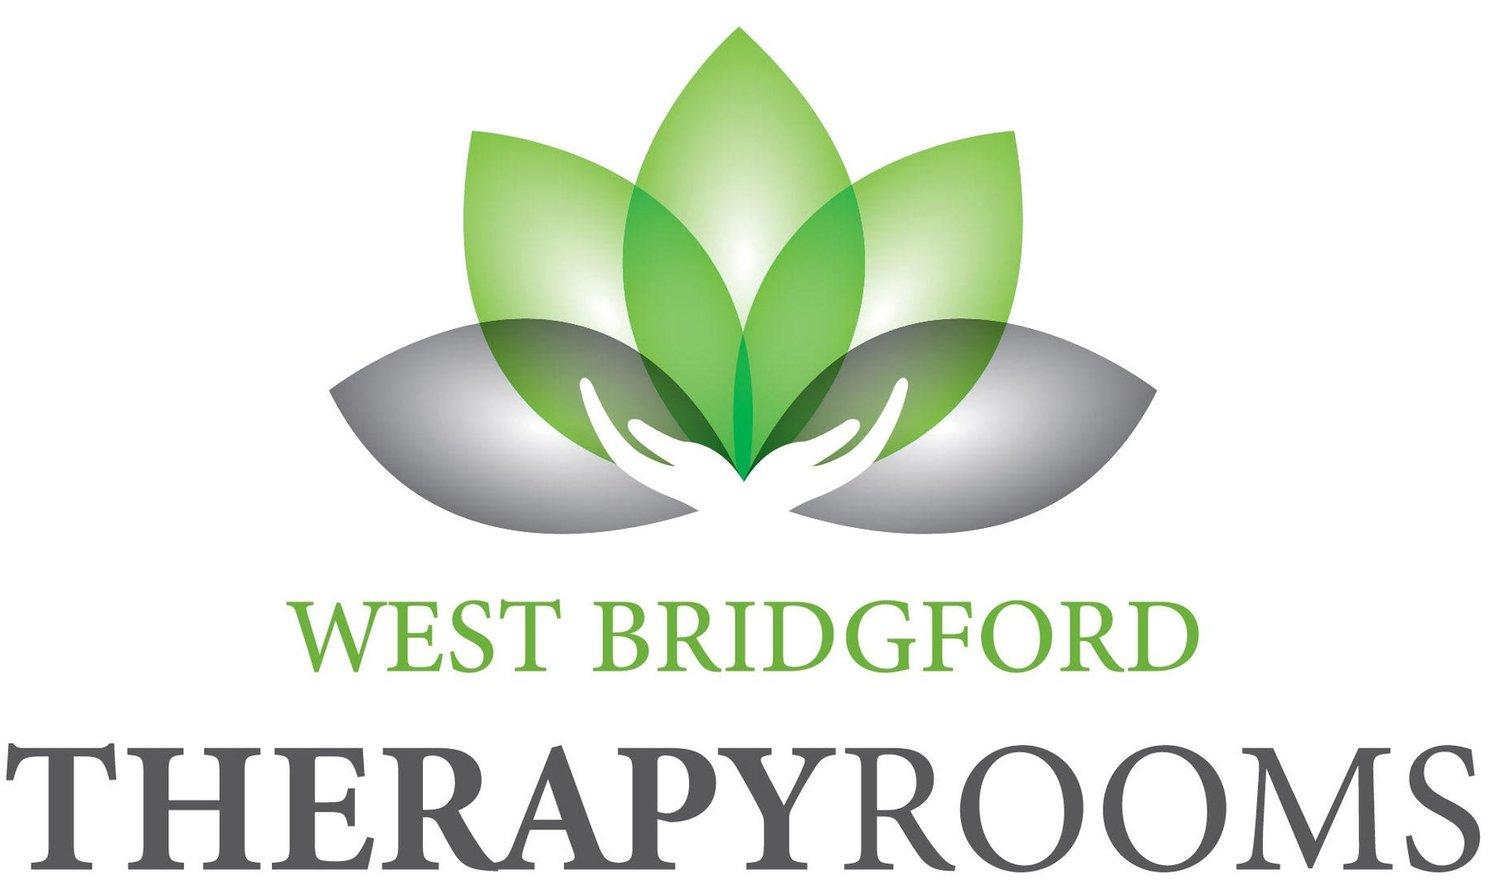 West Bridgford Therapy Rooms